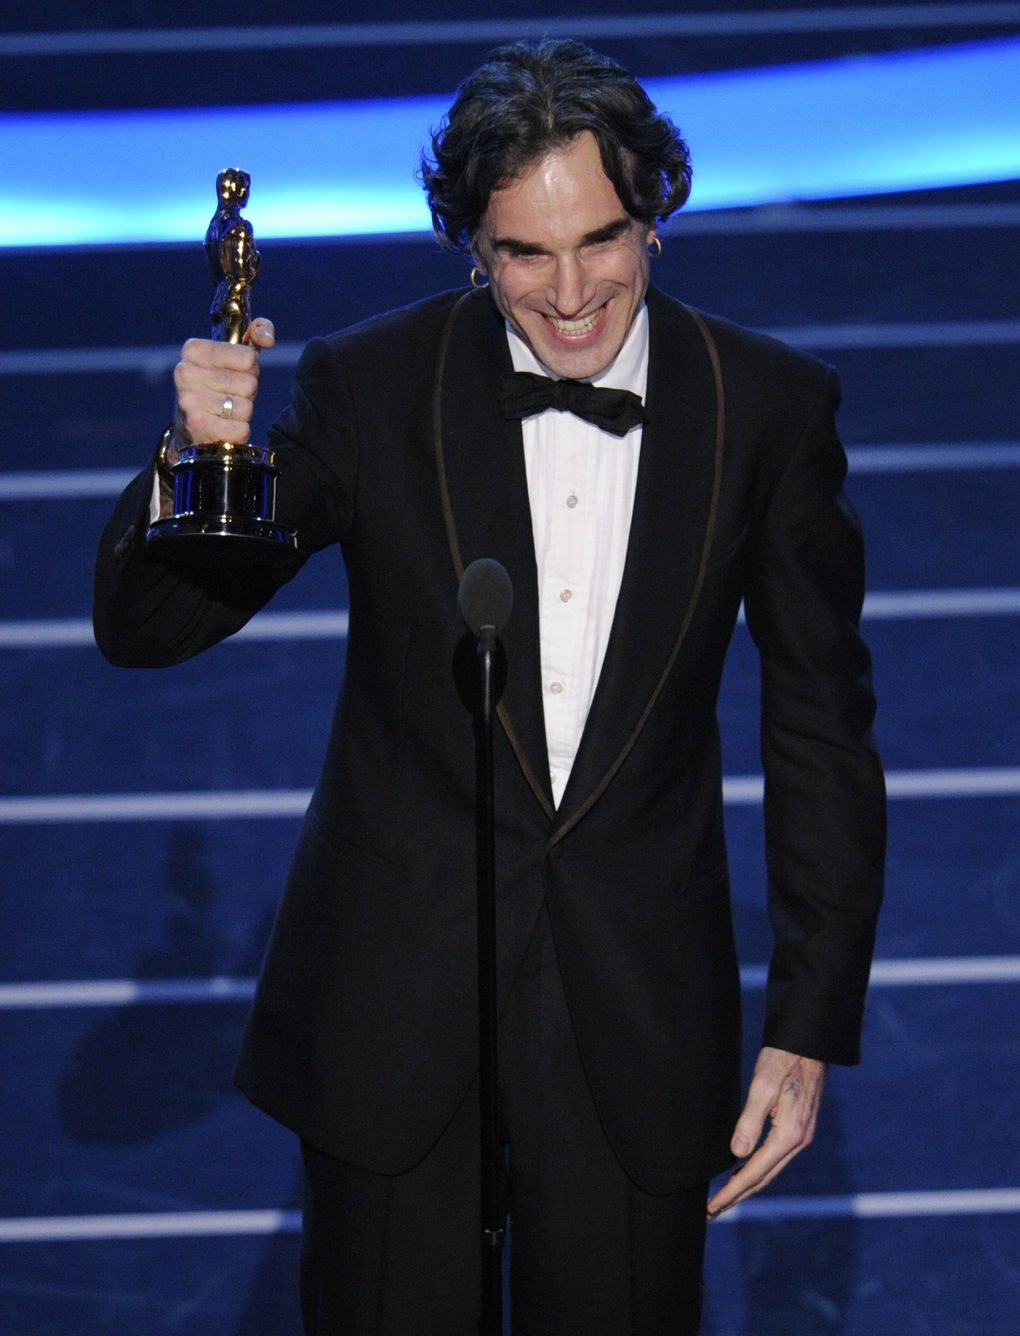 """Daniel Day-Lewis gave creative thanks to his director as he accepted the Oscar for best actor for his work in """"There Will Be Blood"""" in 2008. (Mark J. Terrill / The Associated Press)"""